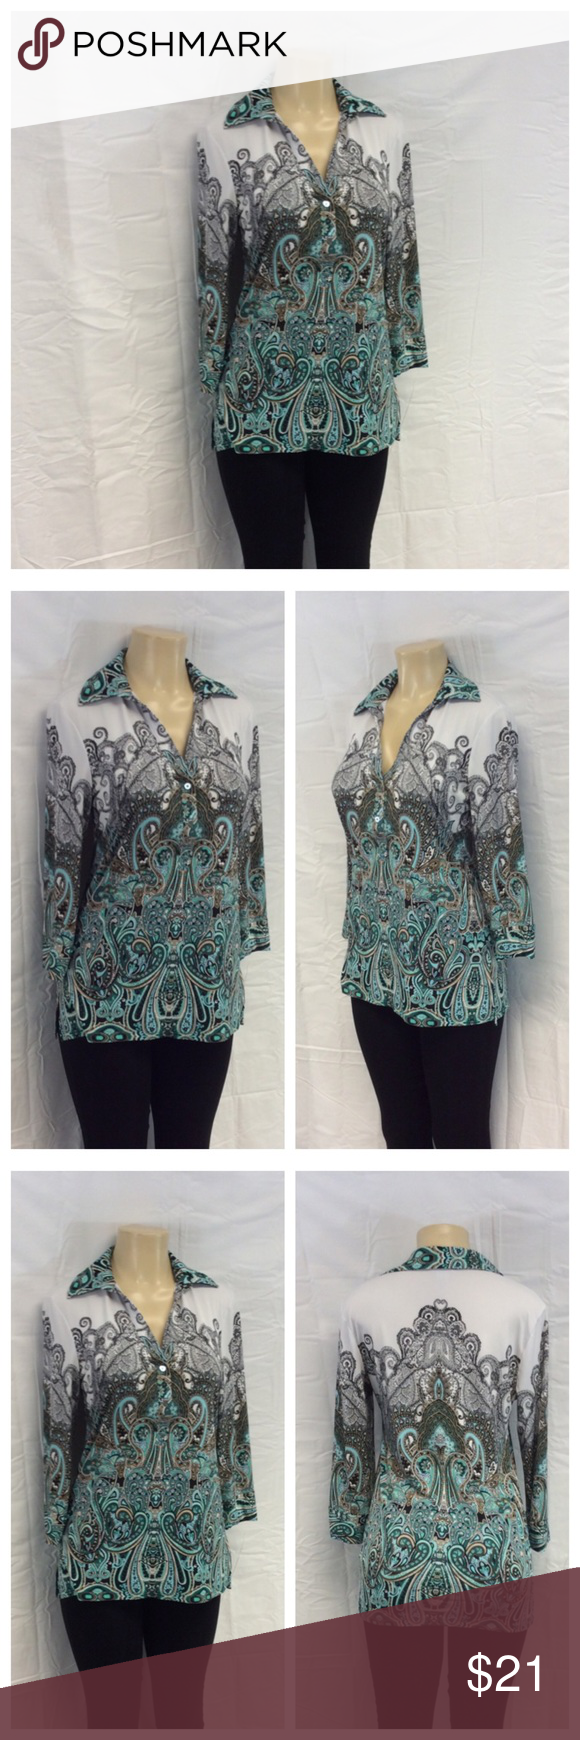 """CADRE LADIES ABSTRACT DESIGN TOP CADRE LADIES ABSTRACT DESIGN TOP, Size M, 96% polyester, 4% spandex, hand wash. Approximate measurements are 20"""" bust laying flat, 16 1/2"""" shoulder seam to shoulder seam, 27 1/2"""" shoulder to hem, 18 1/2"""" sleeve from shoulder to end of sleeve. 0431 Cadre Tops"""